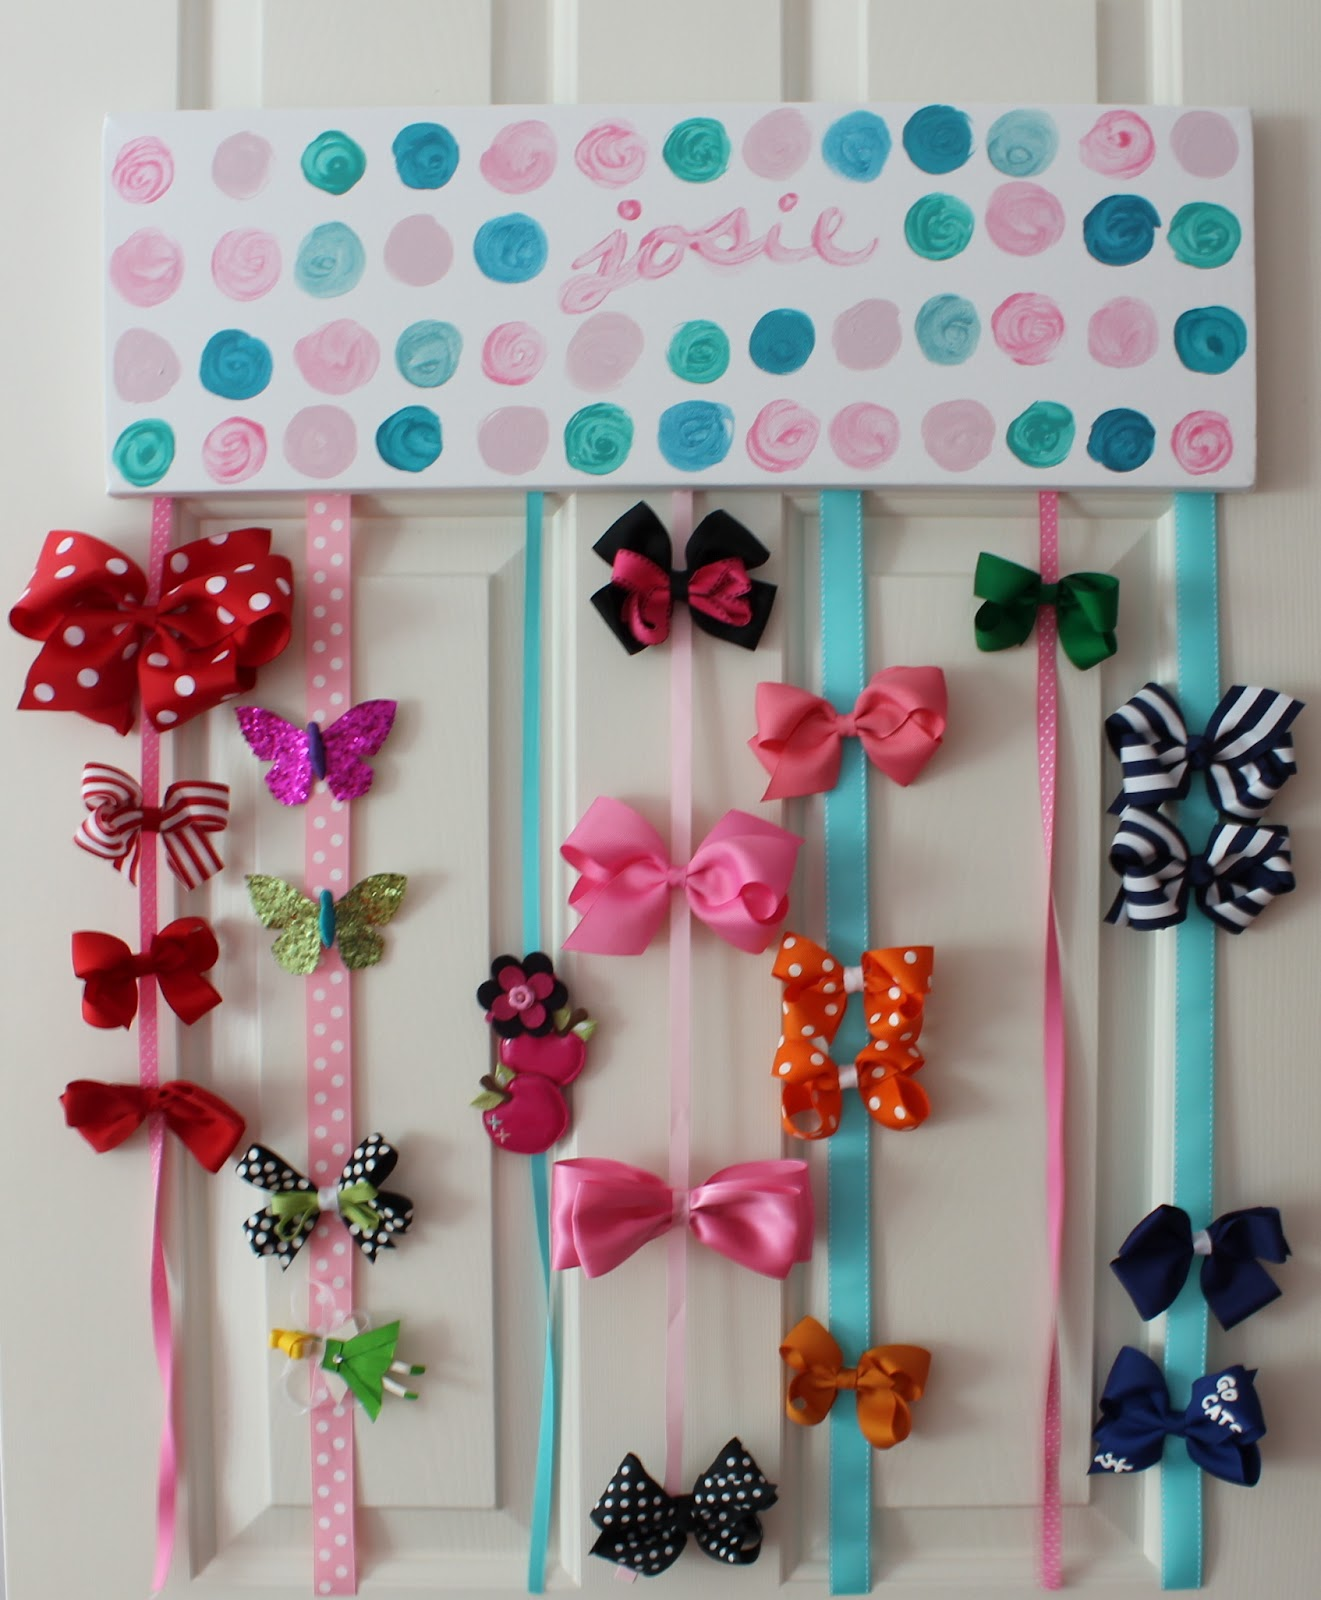 How to organize hair bows - I Painted This Made By Girl Inspired Canvas And Stapled Ribbons To The Back To Hold Her Hair Bows